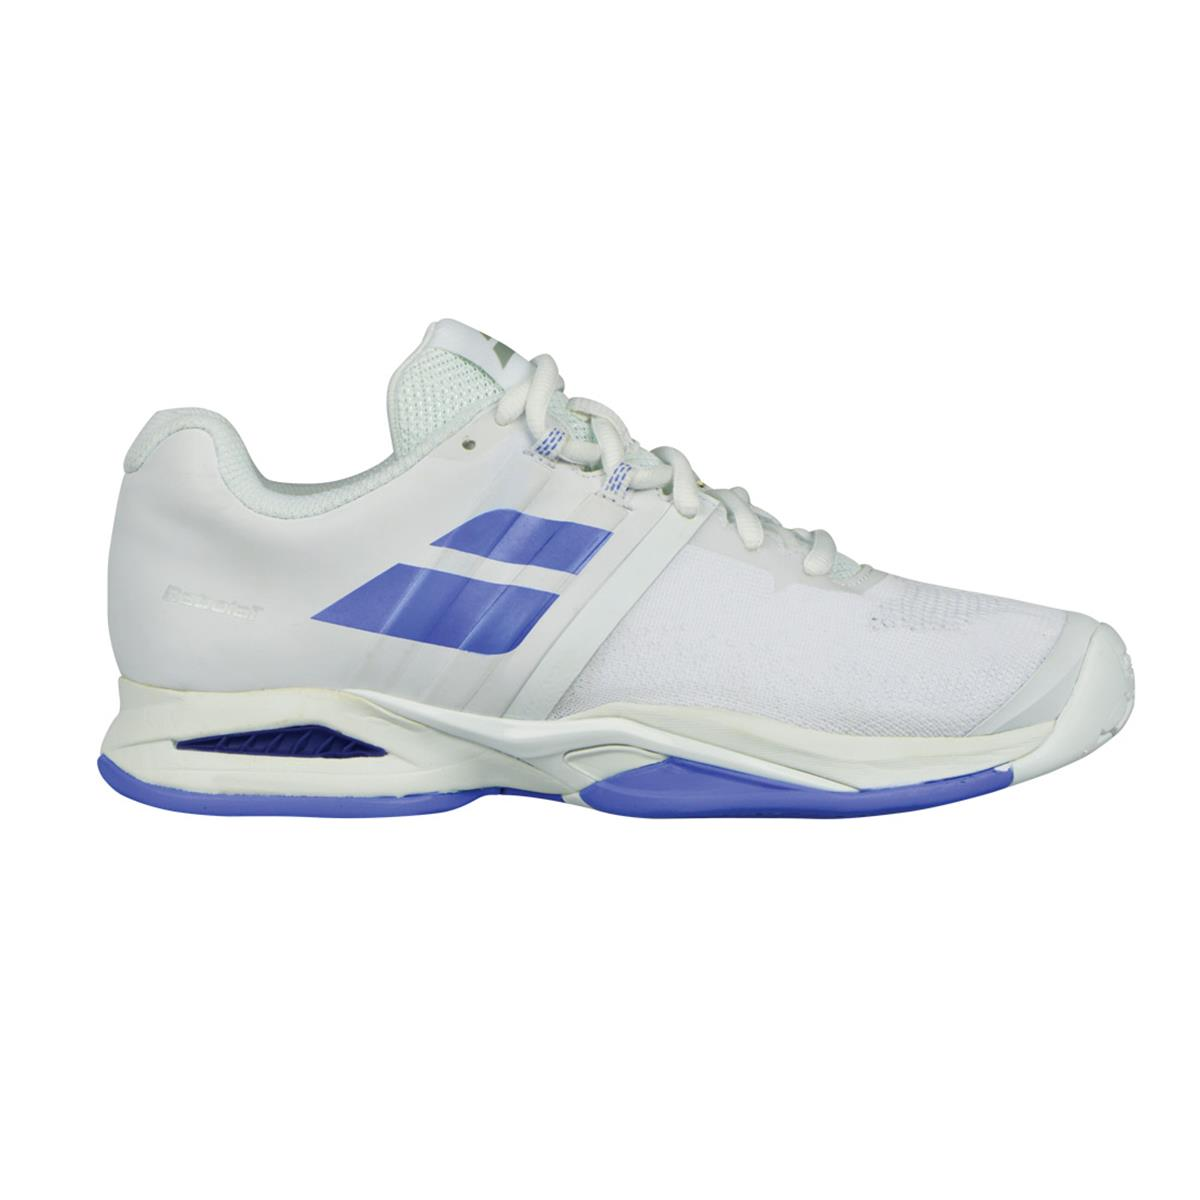 584e81ebf6dc Babolat Propulse Blast All Court Womens Tennis Shoes